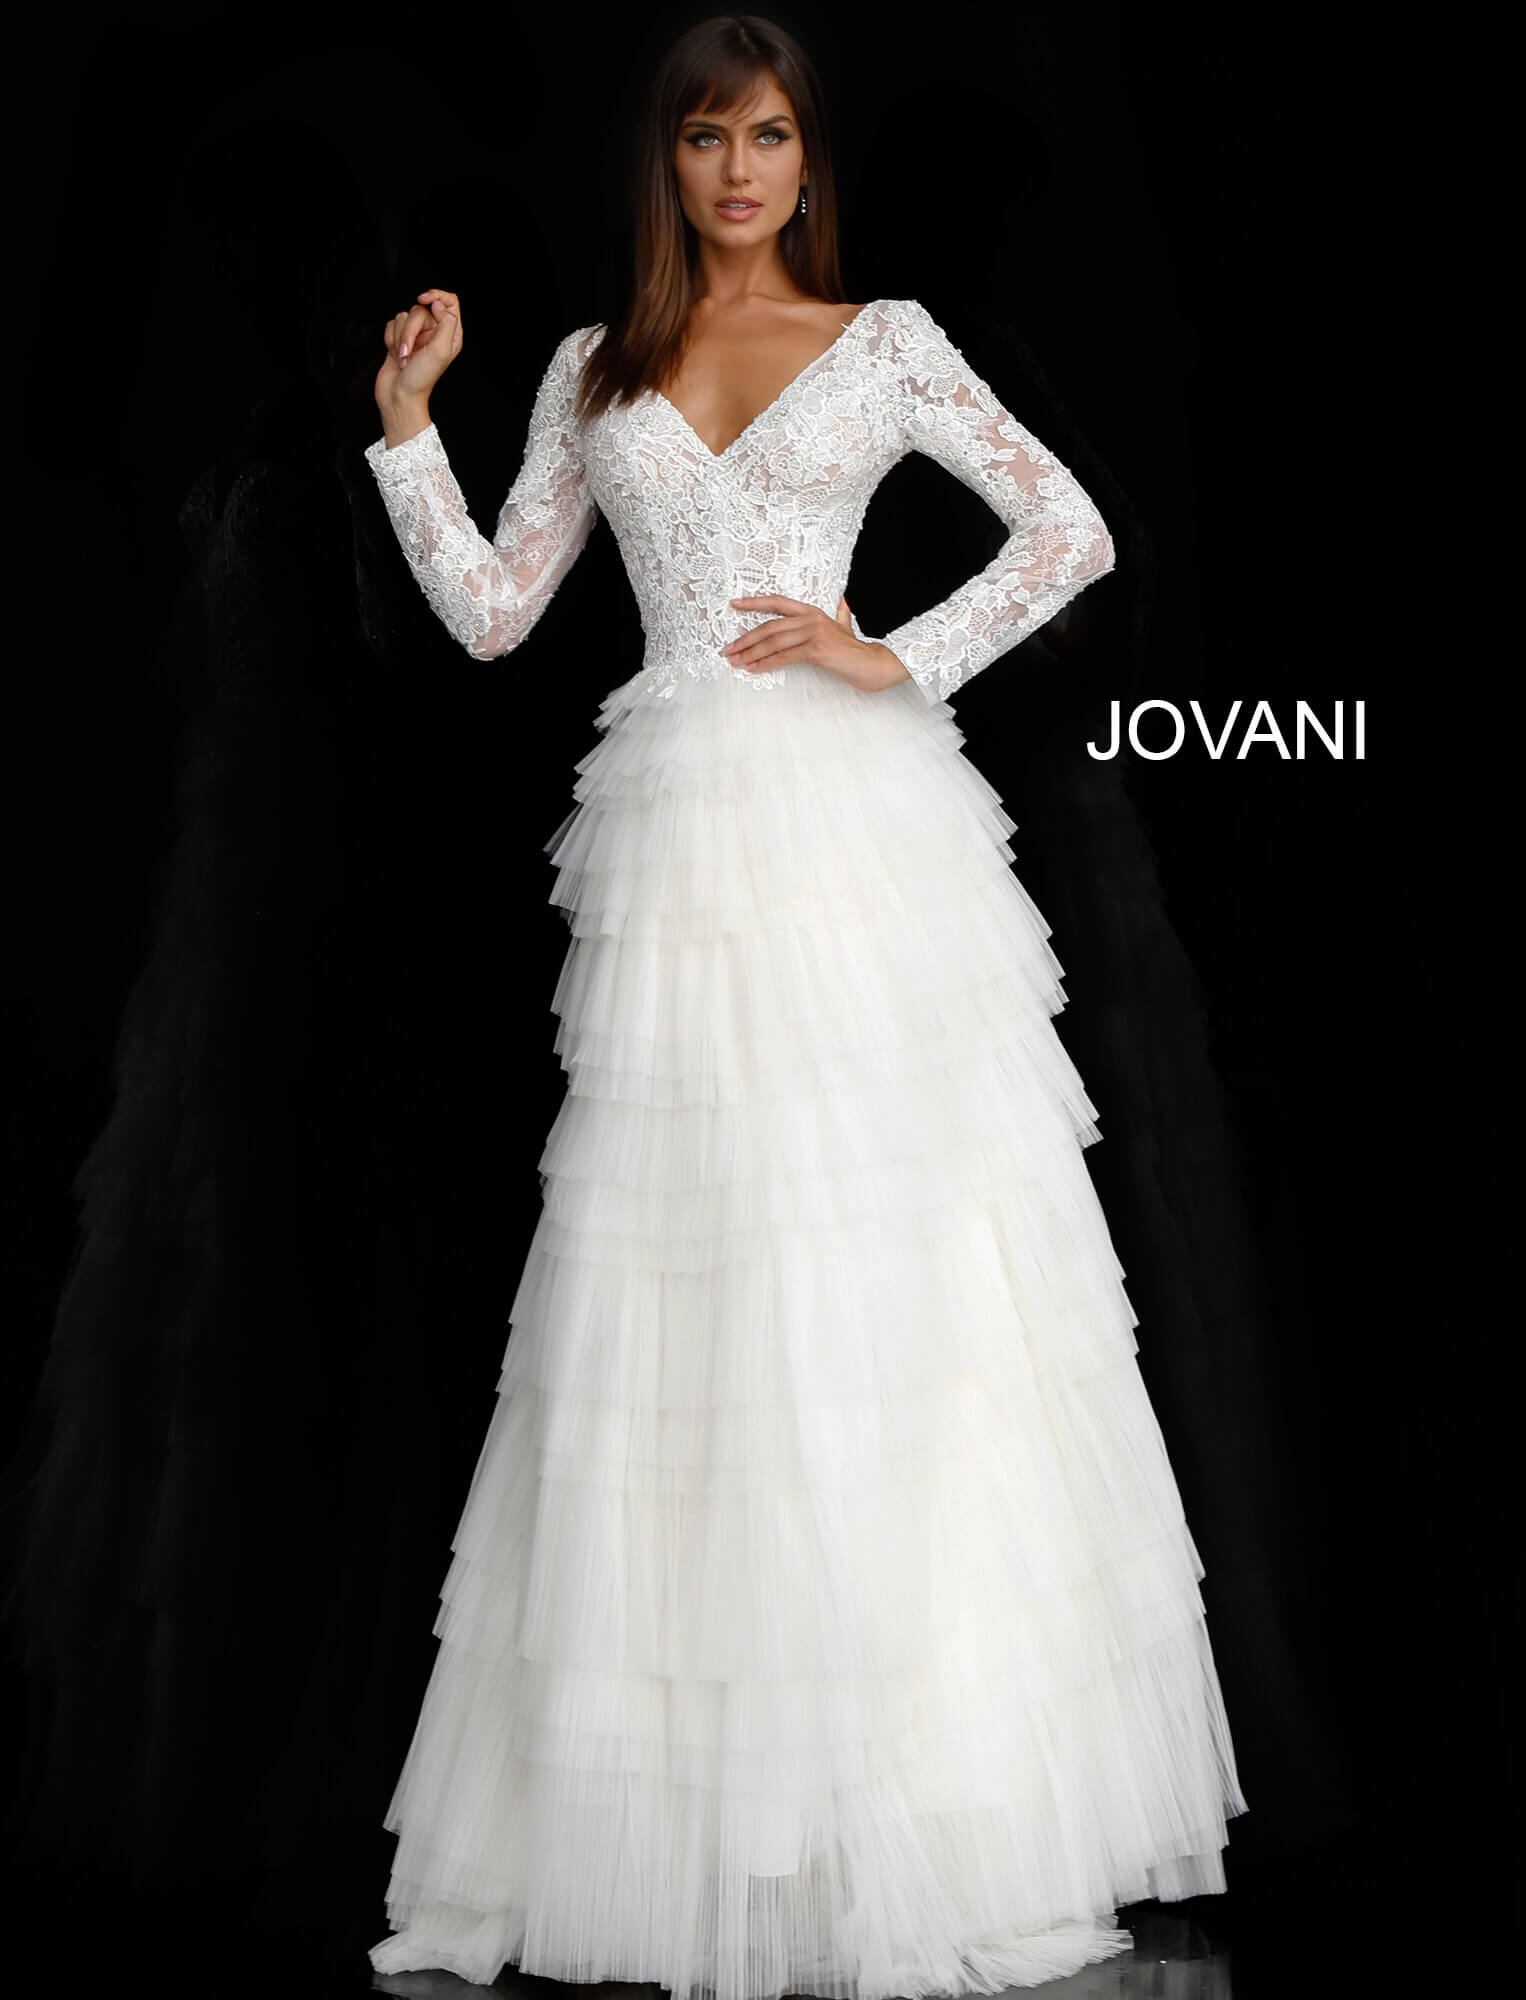 Off White Lace Long Sleeve Bodice Bridal Dress JB65932 on mobile 0